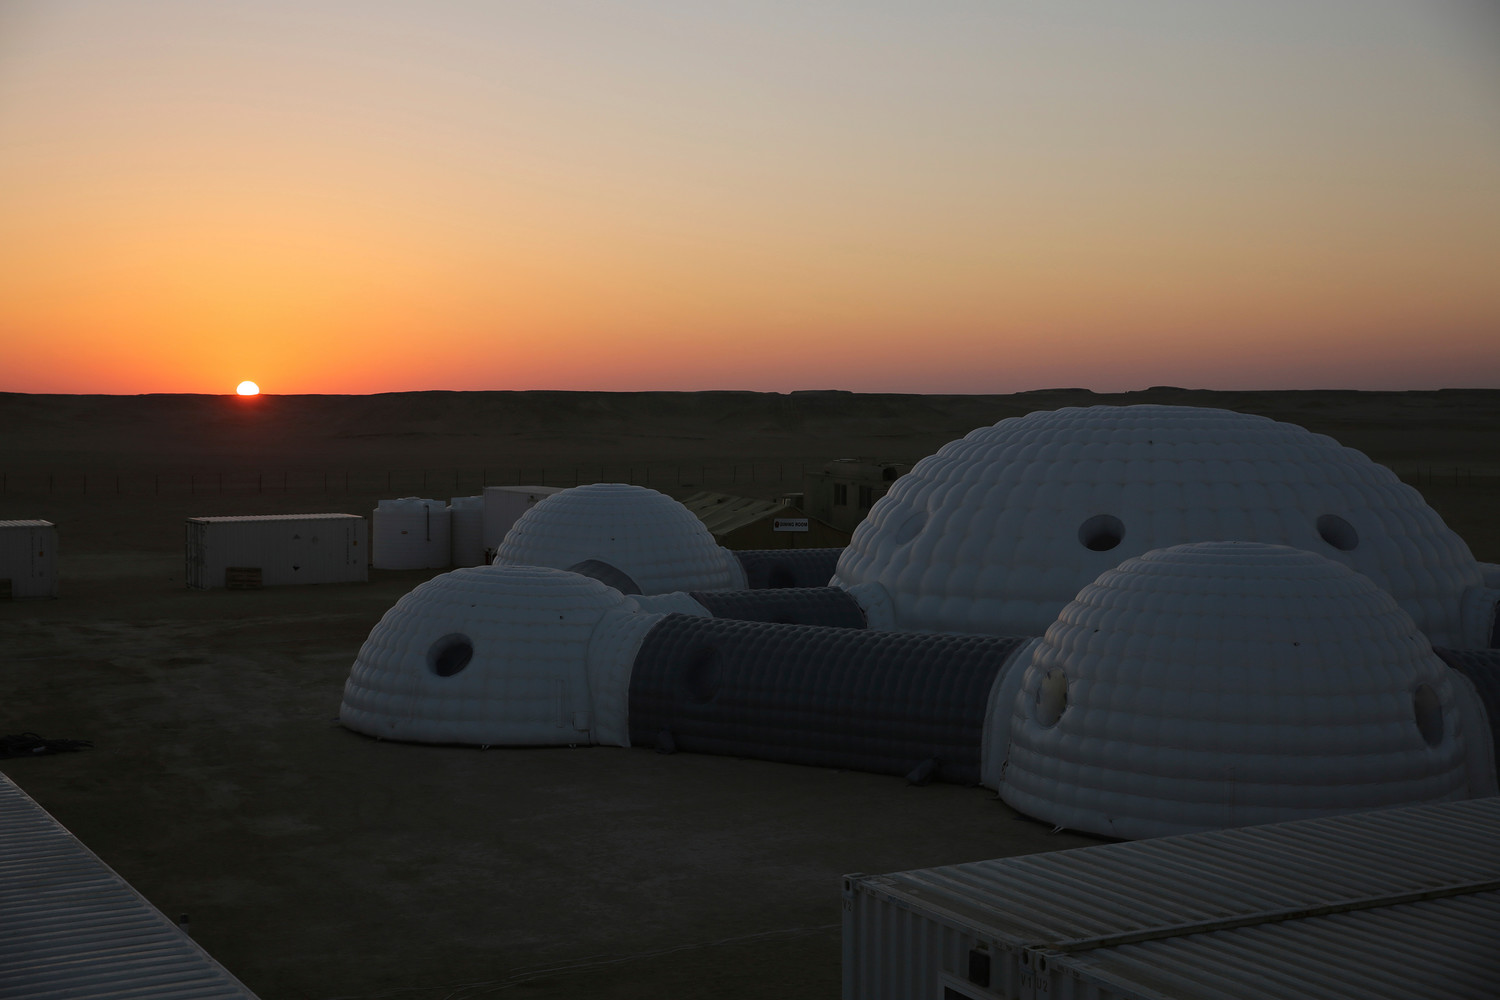 THE ASSOCIATED PRESSThe sun rises over a 2.4-ton inflated habitat used by the AMADEE-18 Mars simulation in the Dhofar desert of southern Oman on Thursday. The desolate desert resembles Mars so much that more than 200 scientists from 25 nations organized by the Austrian Space Forum are using it for the next four weeks to field-test technology for a manned mission to Mars.